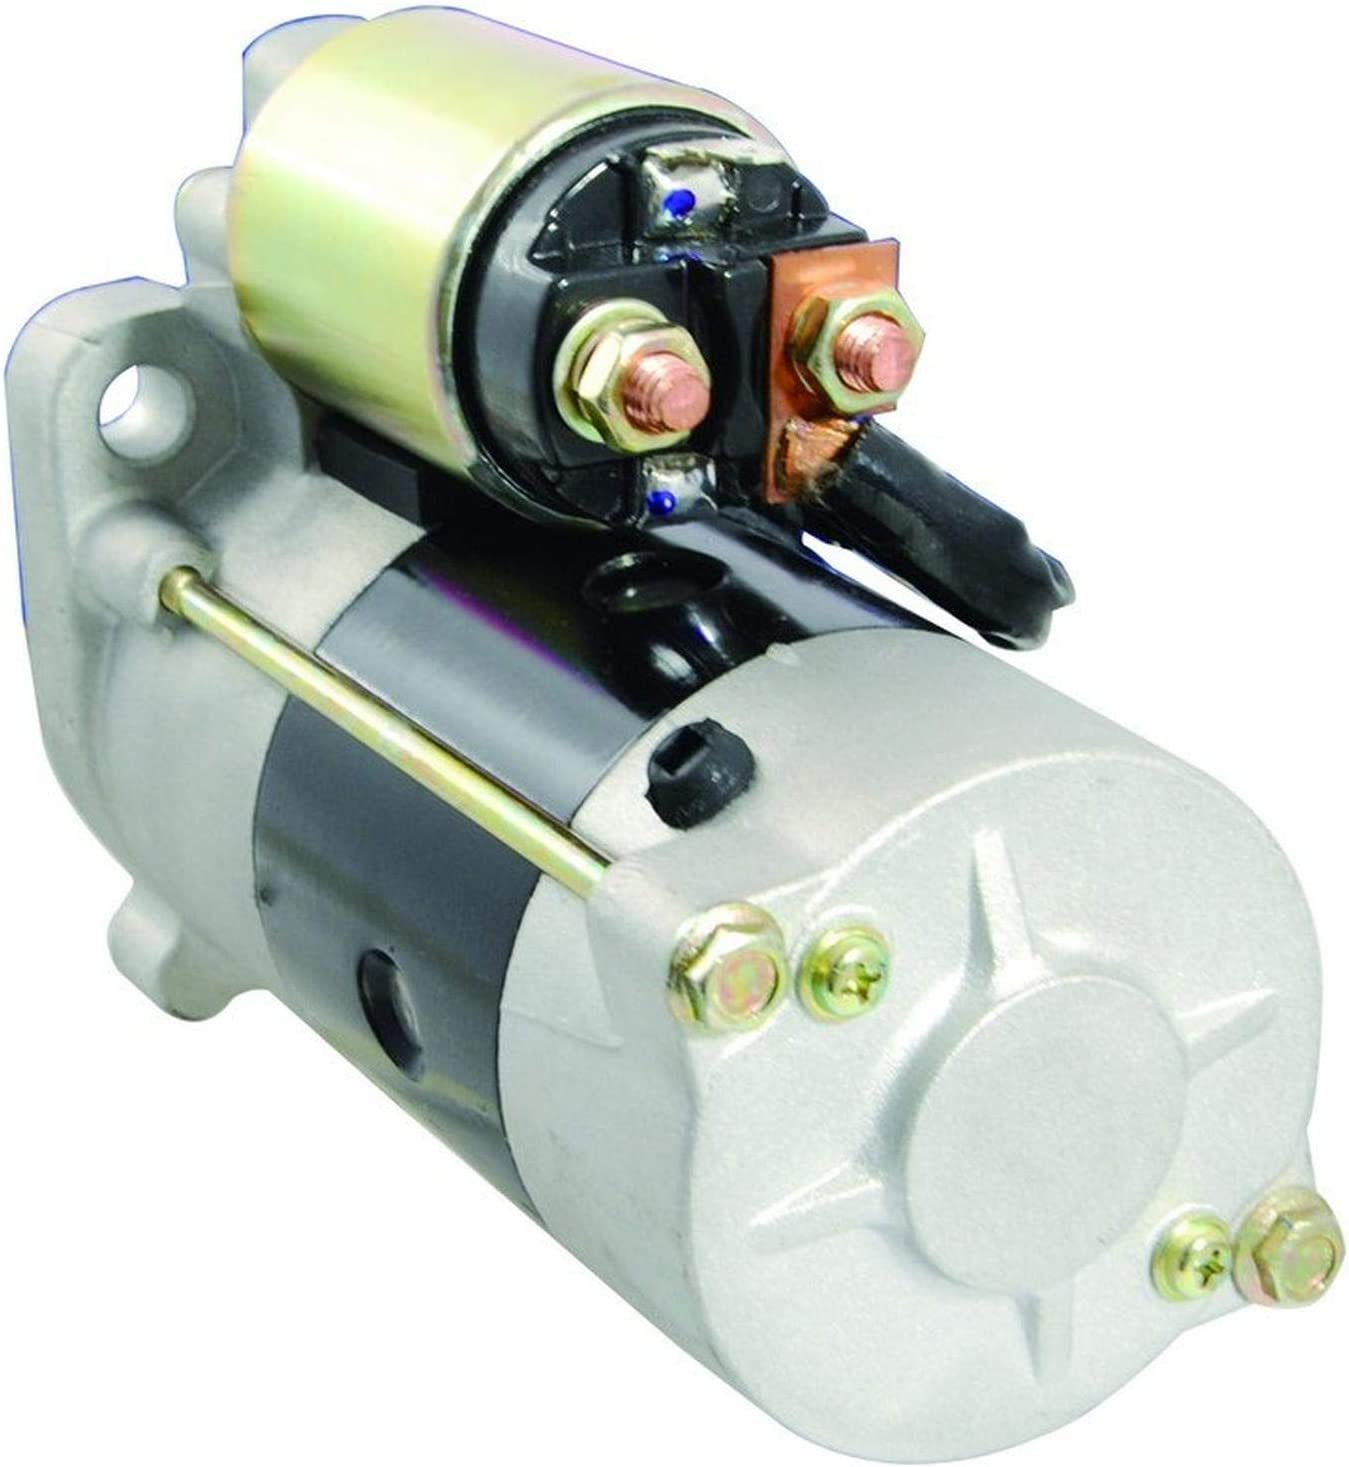 PREMIER GEAR PROFESSIONAL GRADE ENGINEERED FOR QUALITY PGEU-32699 Starter